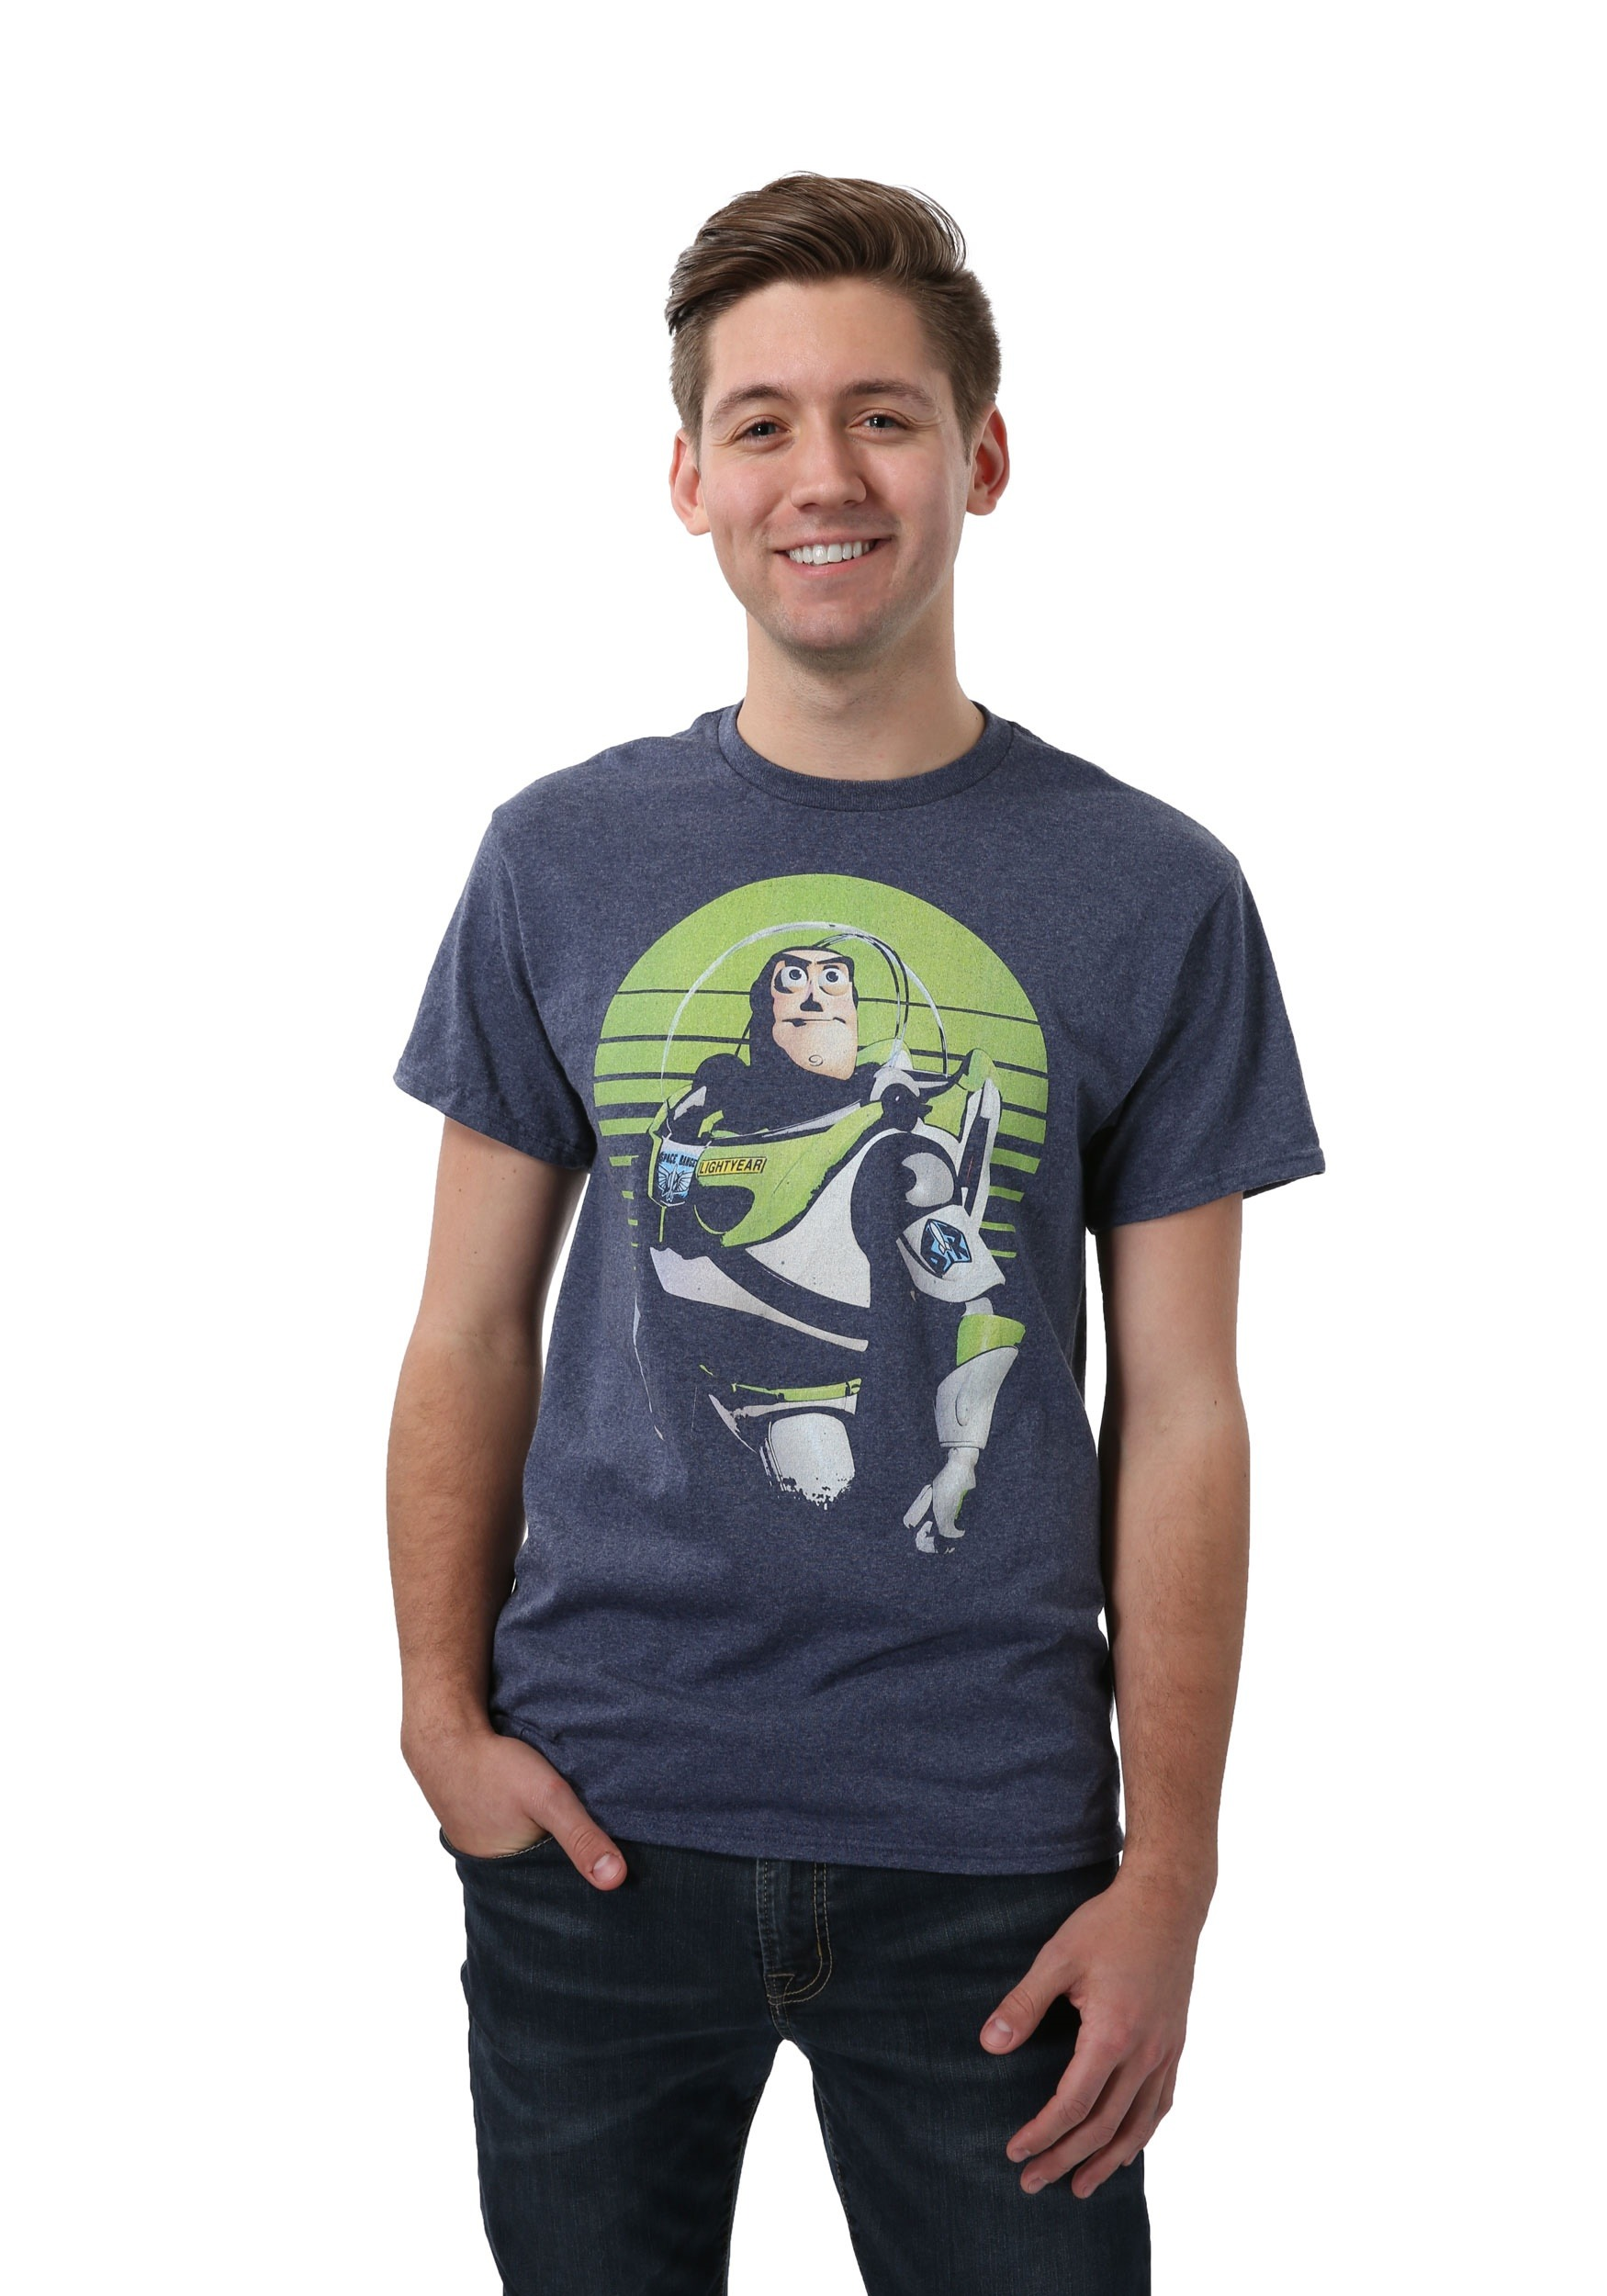 Sight on stars buzz lightyear t shirt for men for Mens shirt with stars